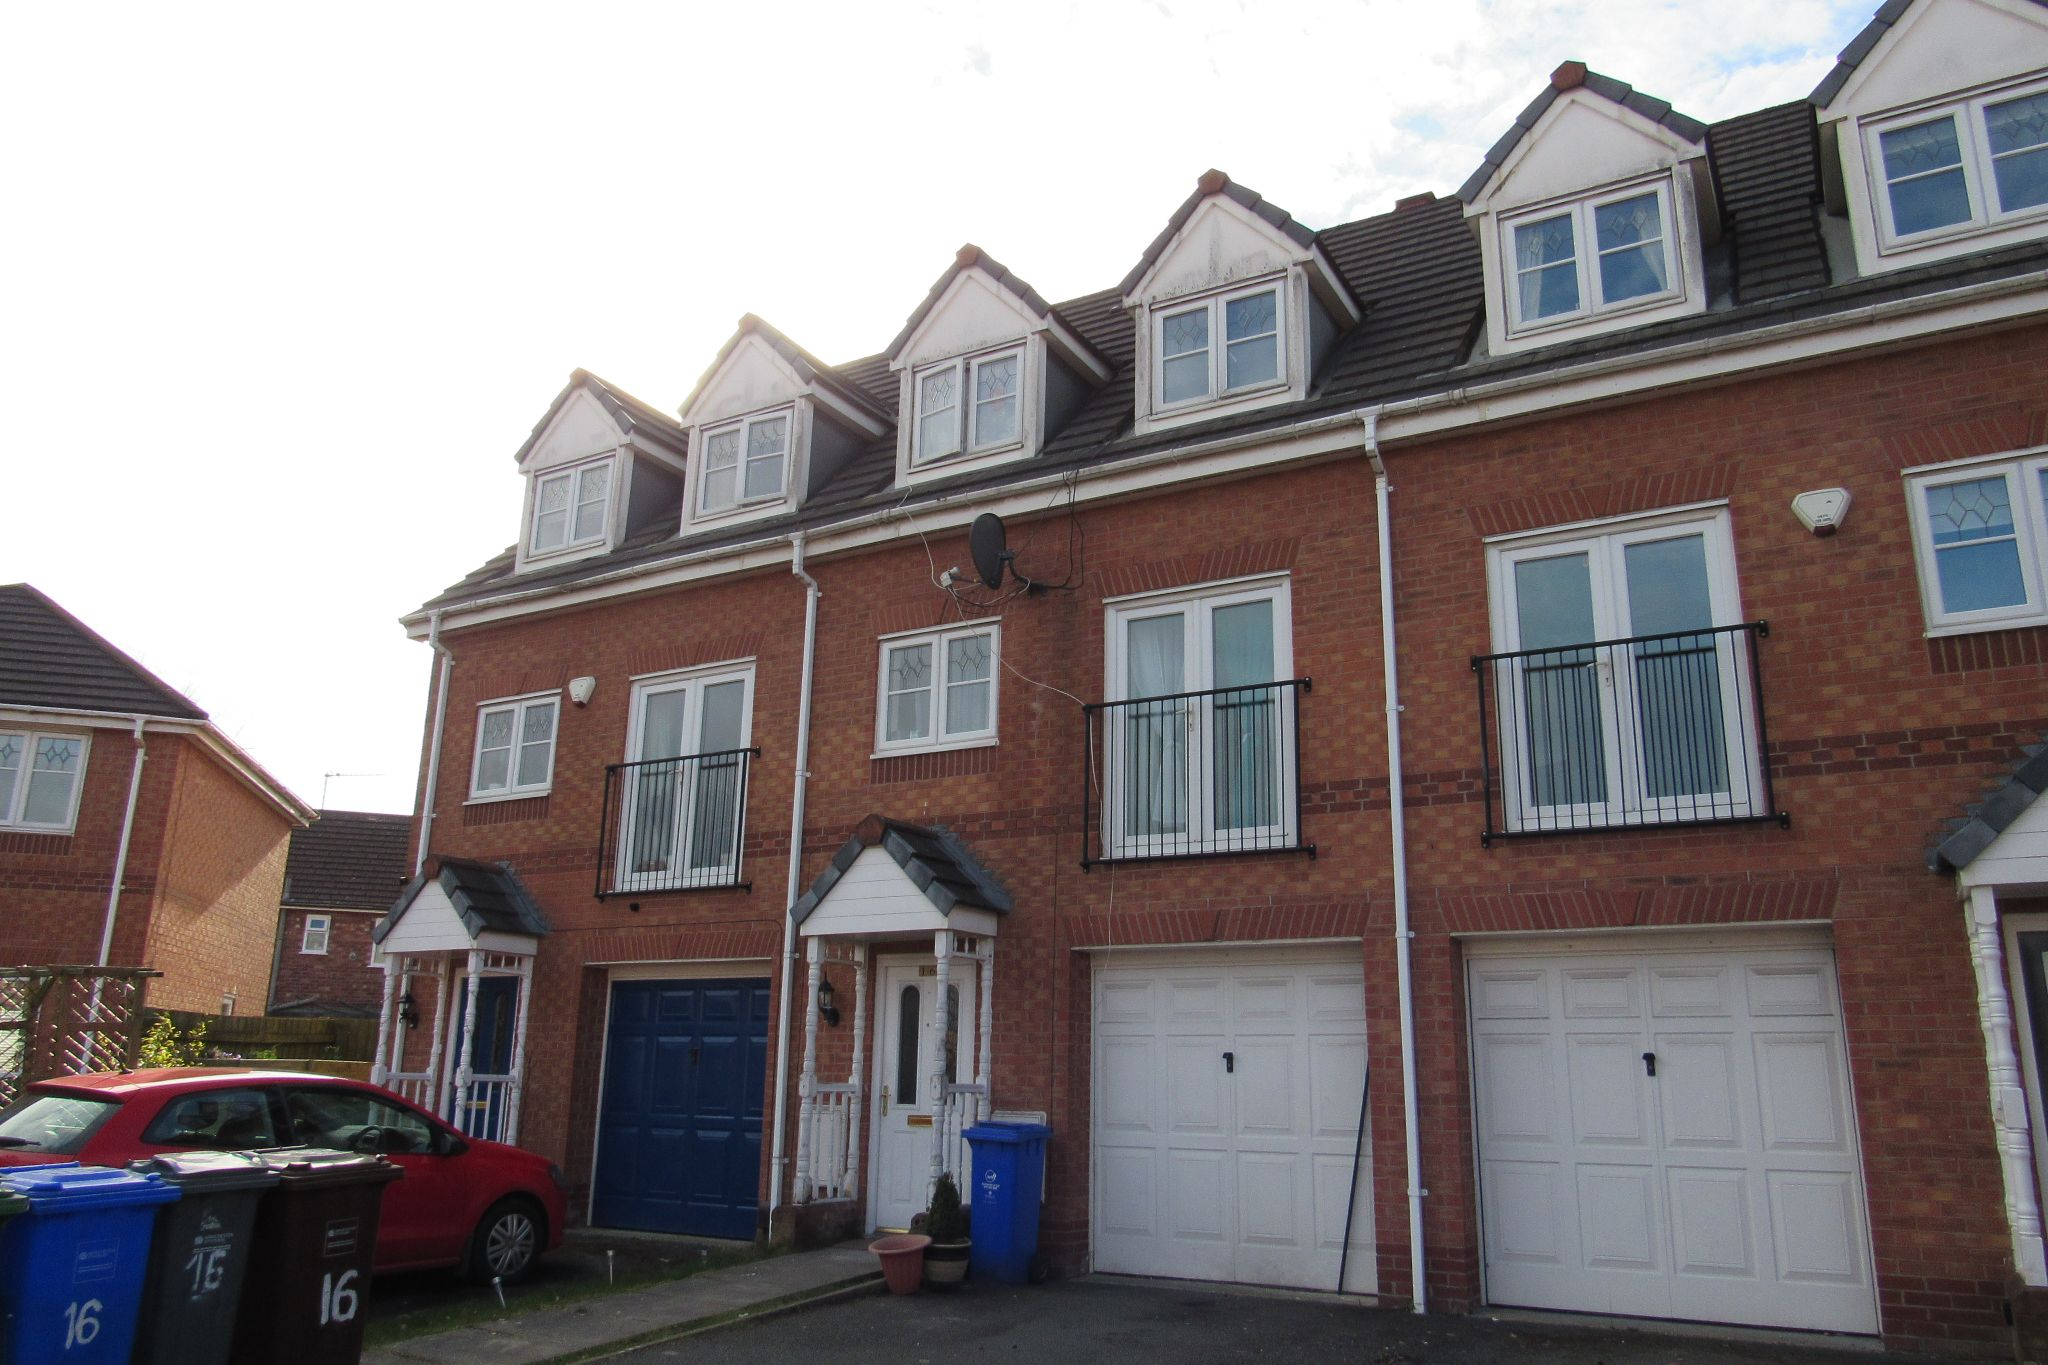 3 bedroom town house SSTC in Manchester - Photograph 1.